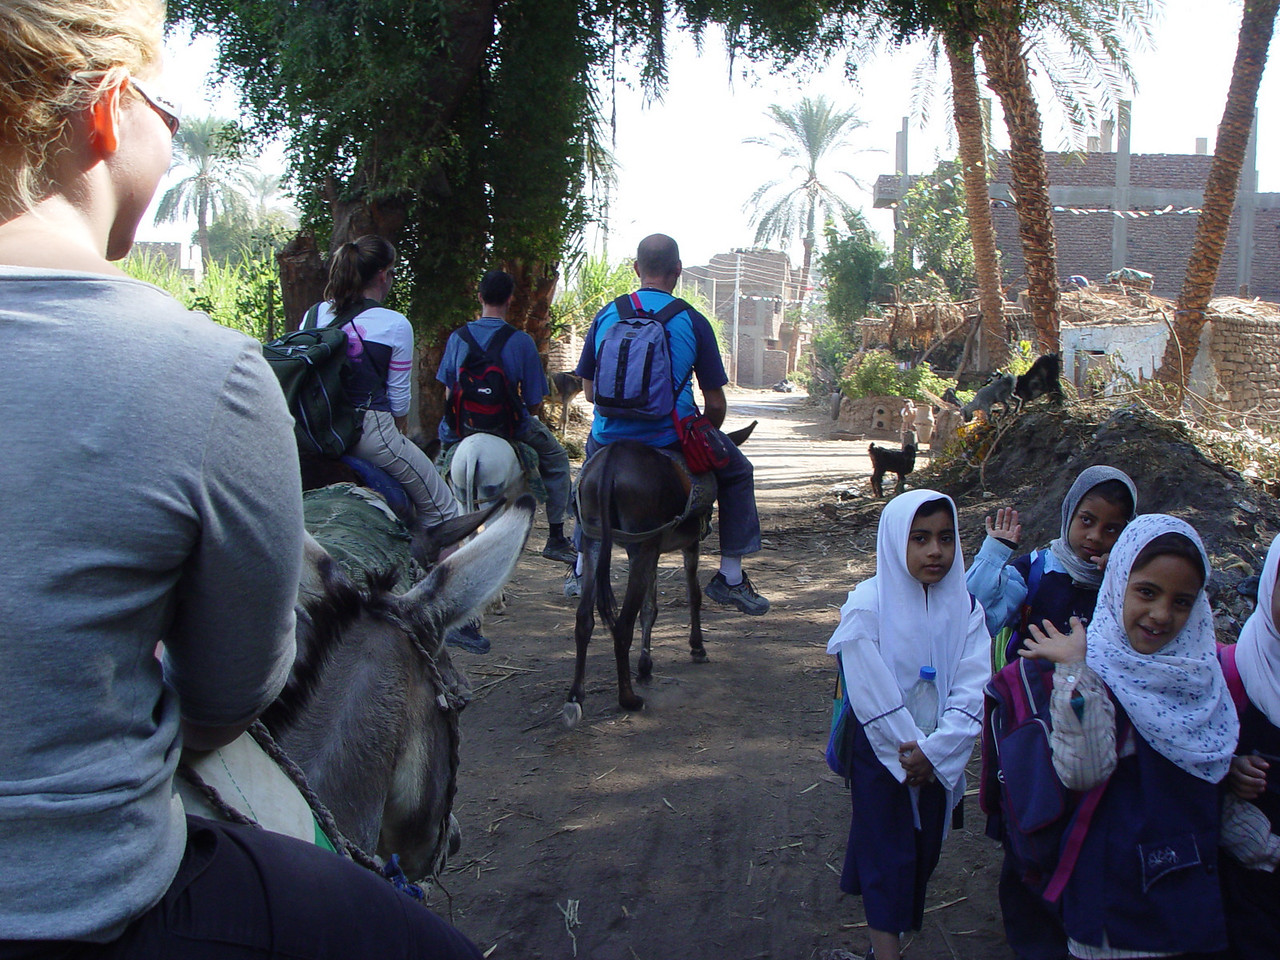 f) We ride back through villages, the children waive at us and love having their picture taken.